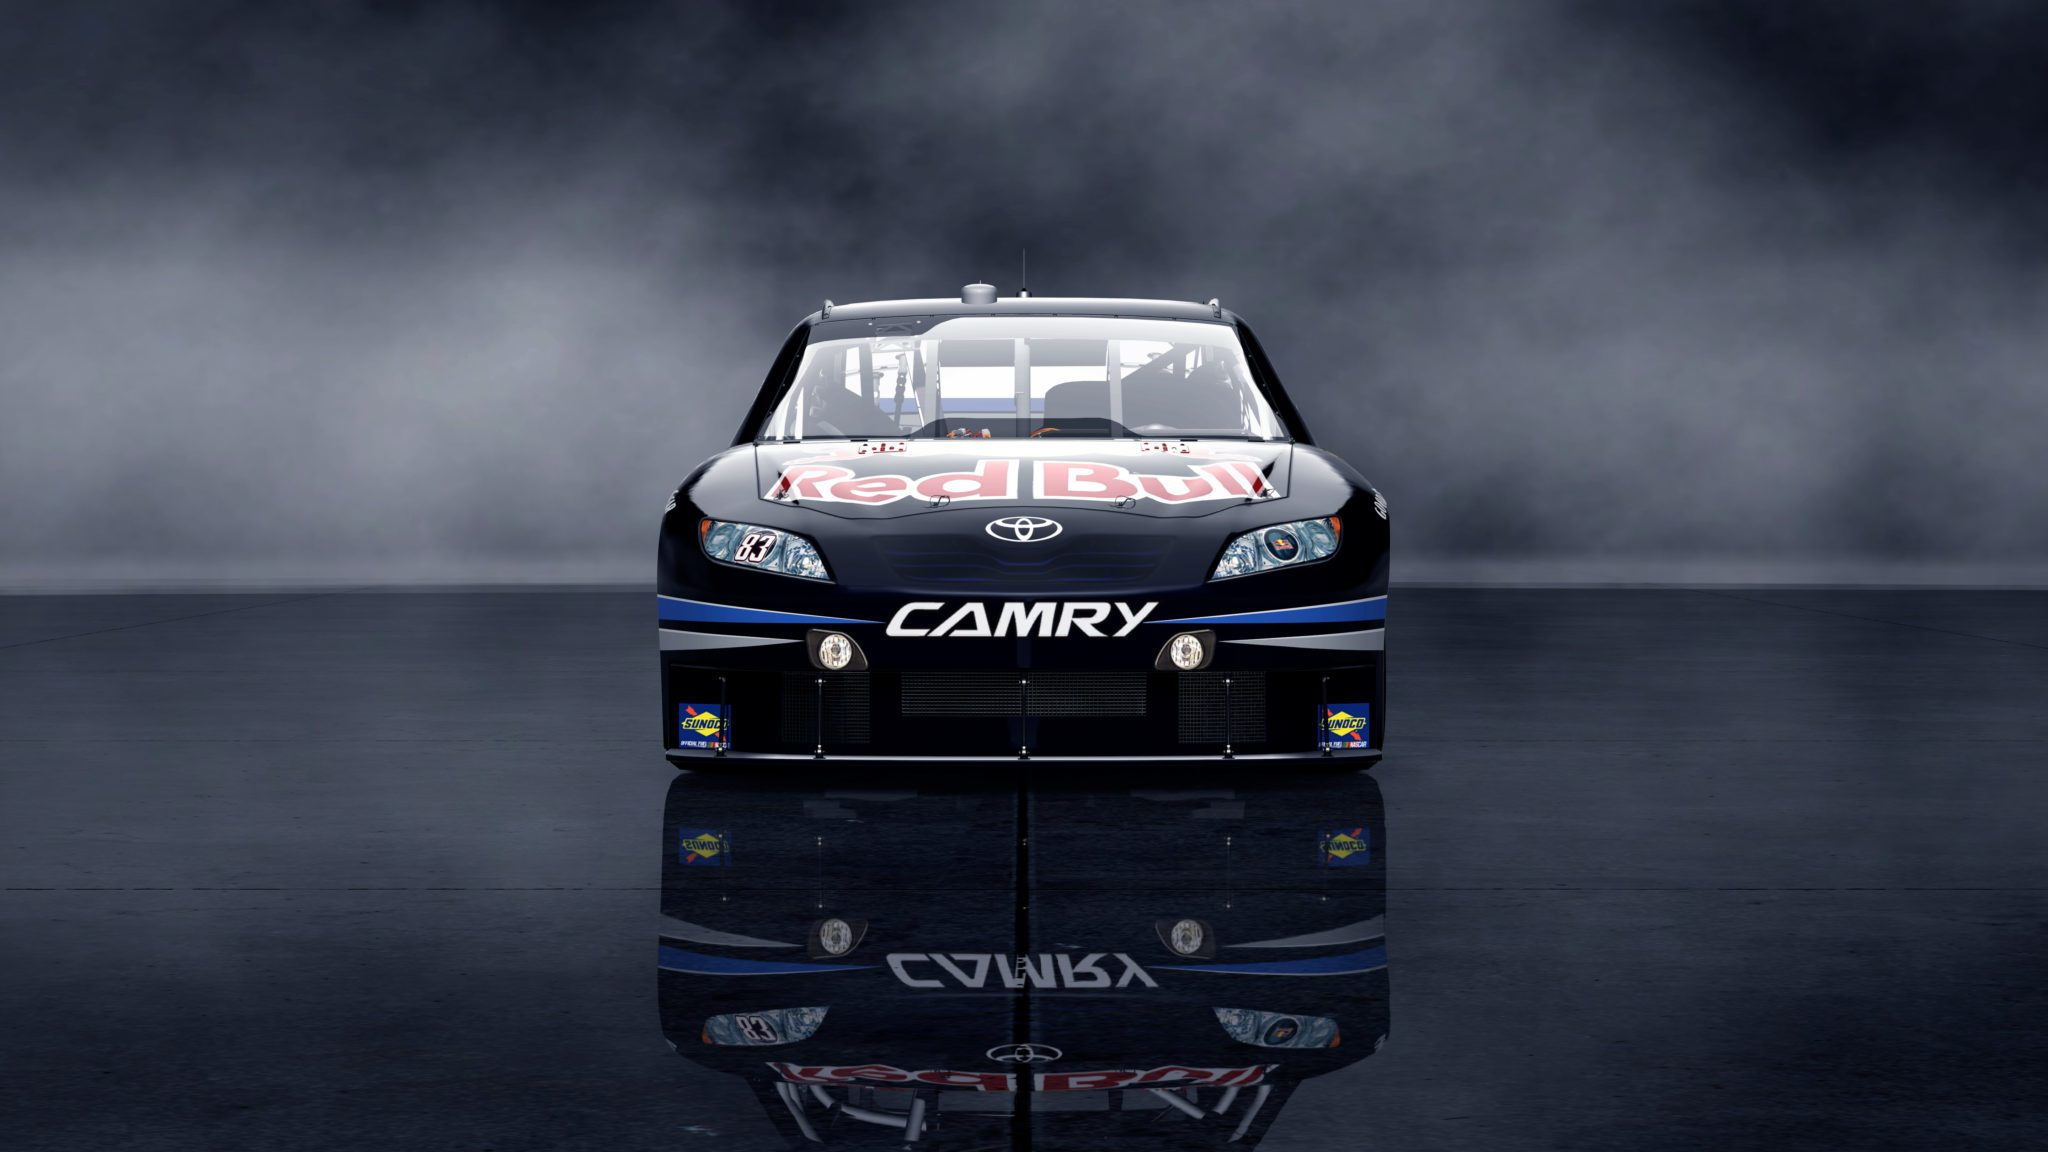 47 NASCAR GT5 Screenshots from